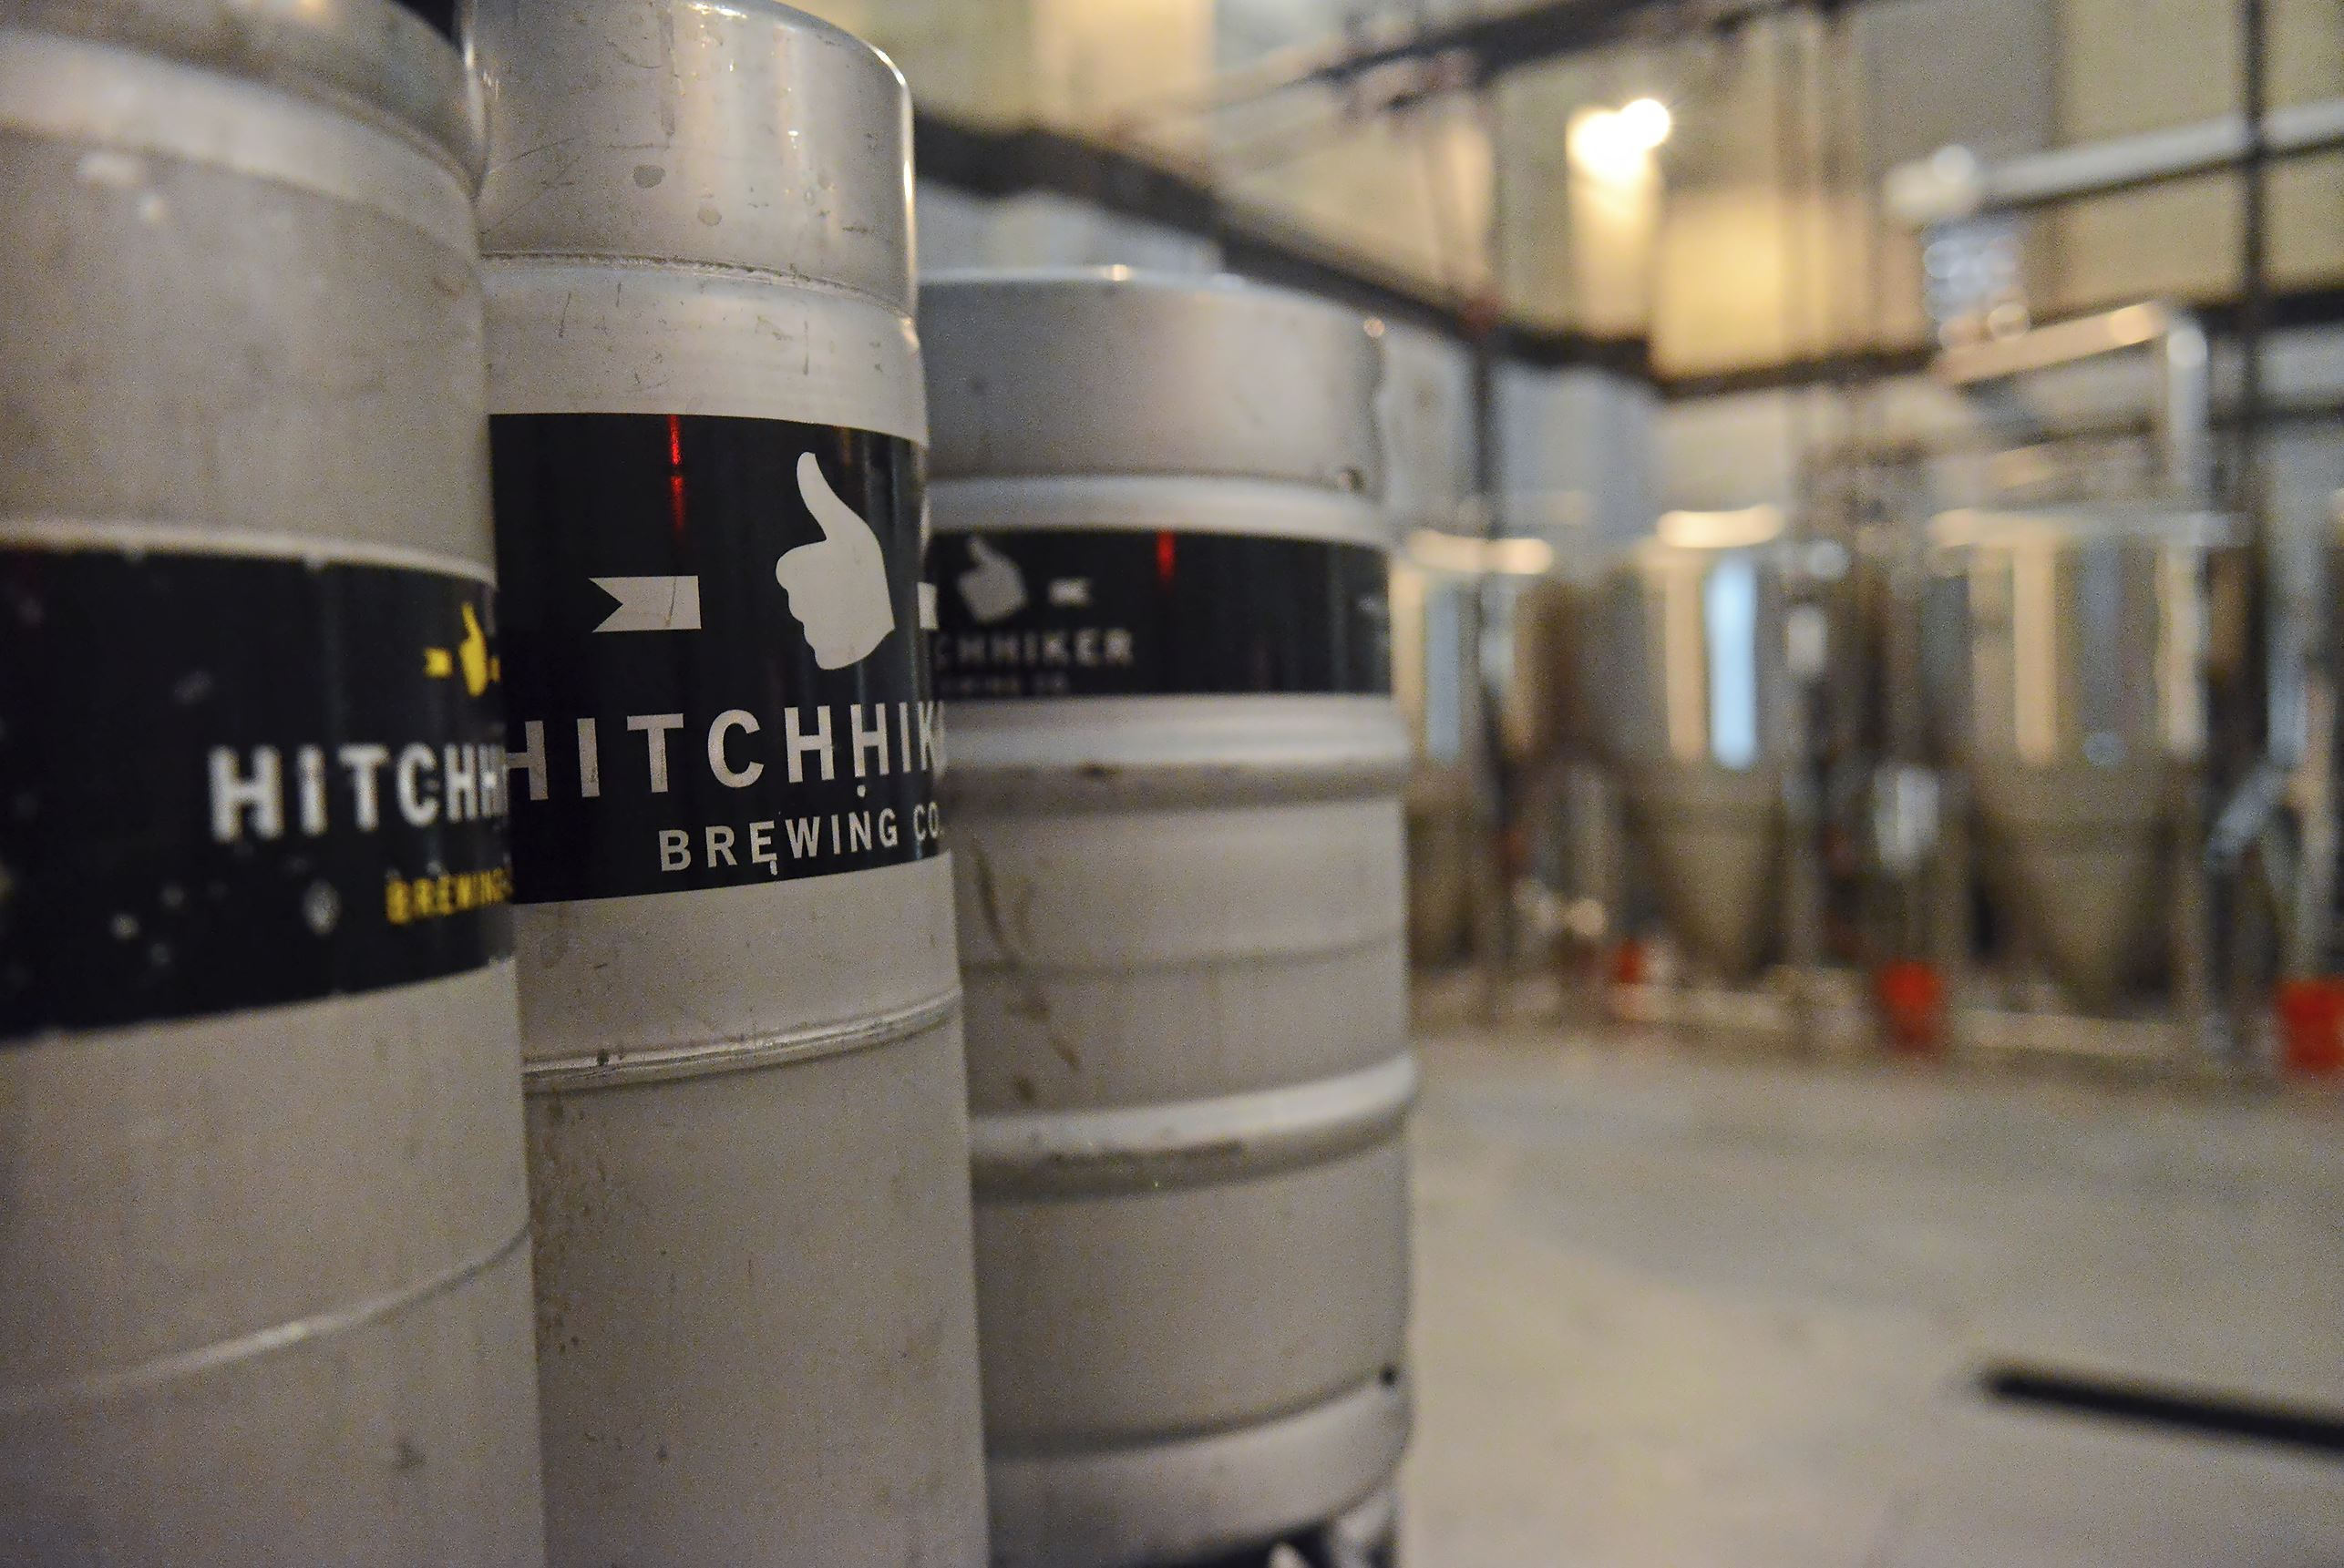 20170906rldHitchhiker02 Kegs stand in the corner of the brewery of Hitchhiker Brewing Company's second location Wednesday in Sharpsburg.